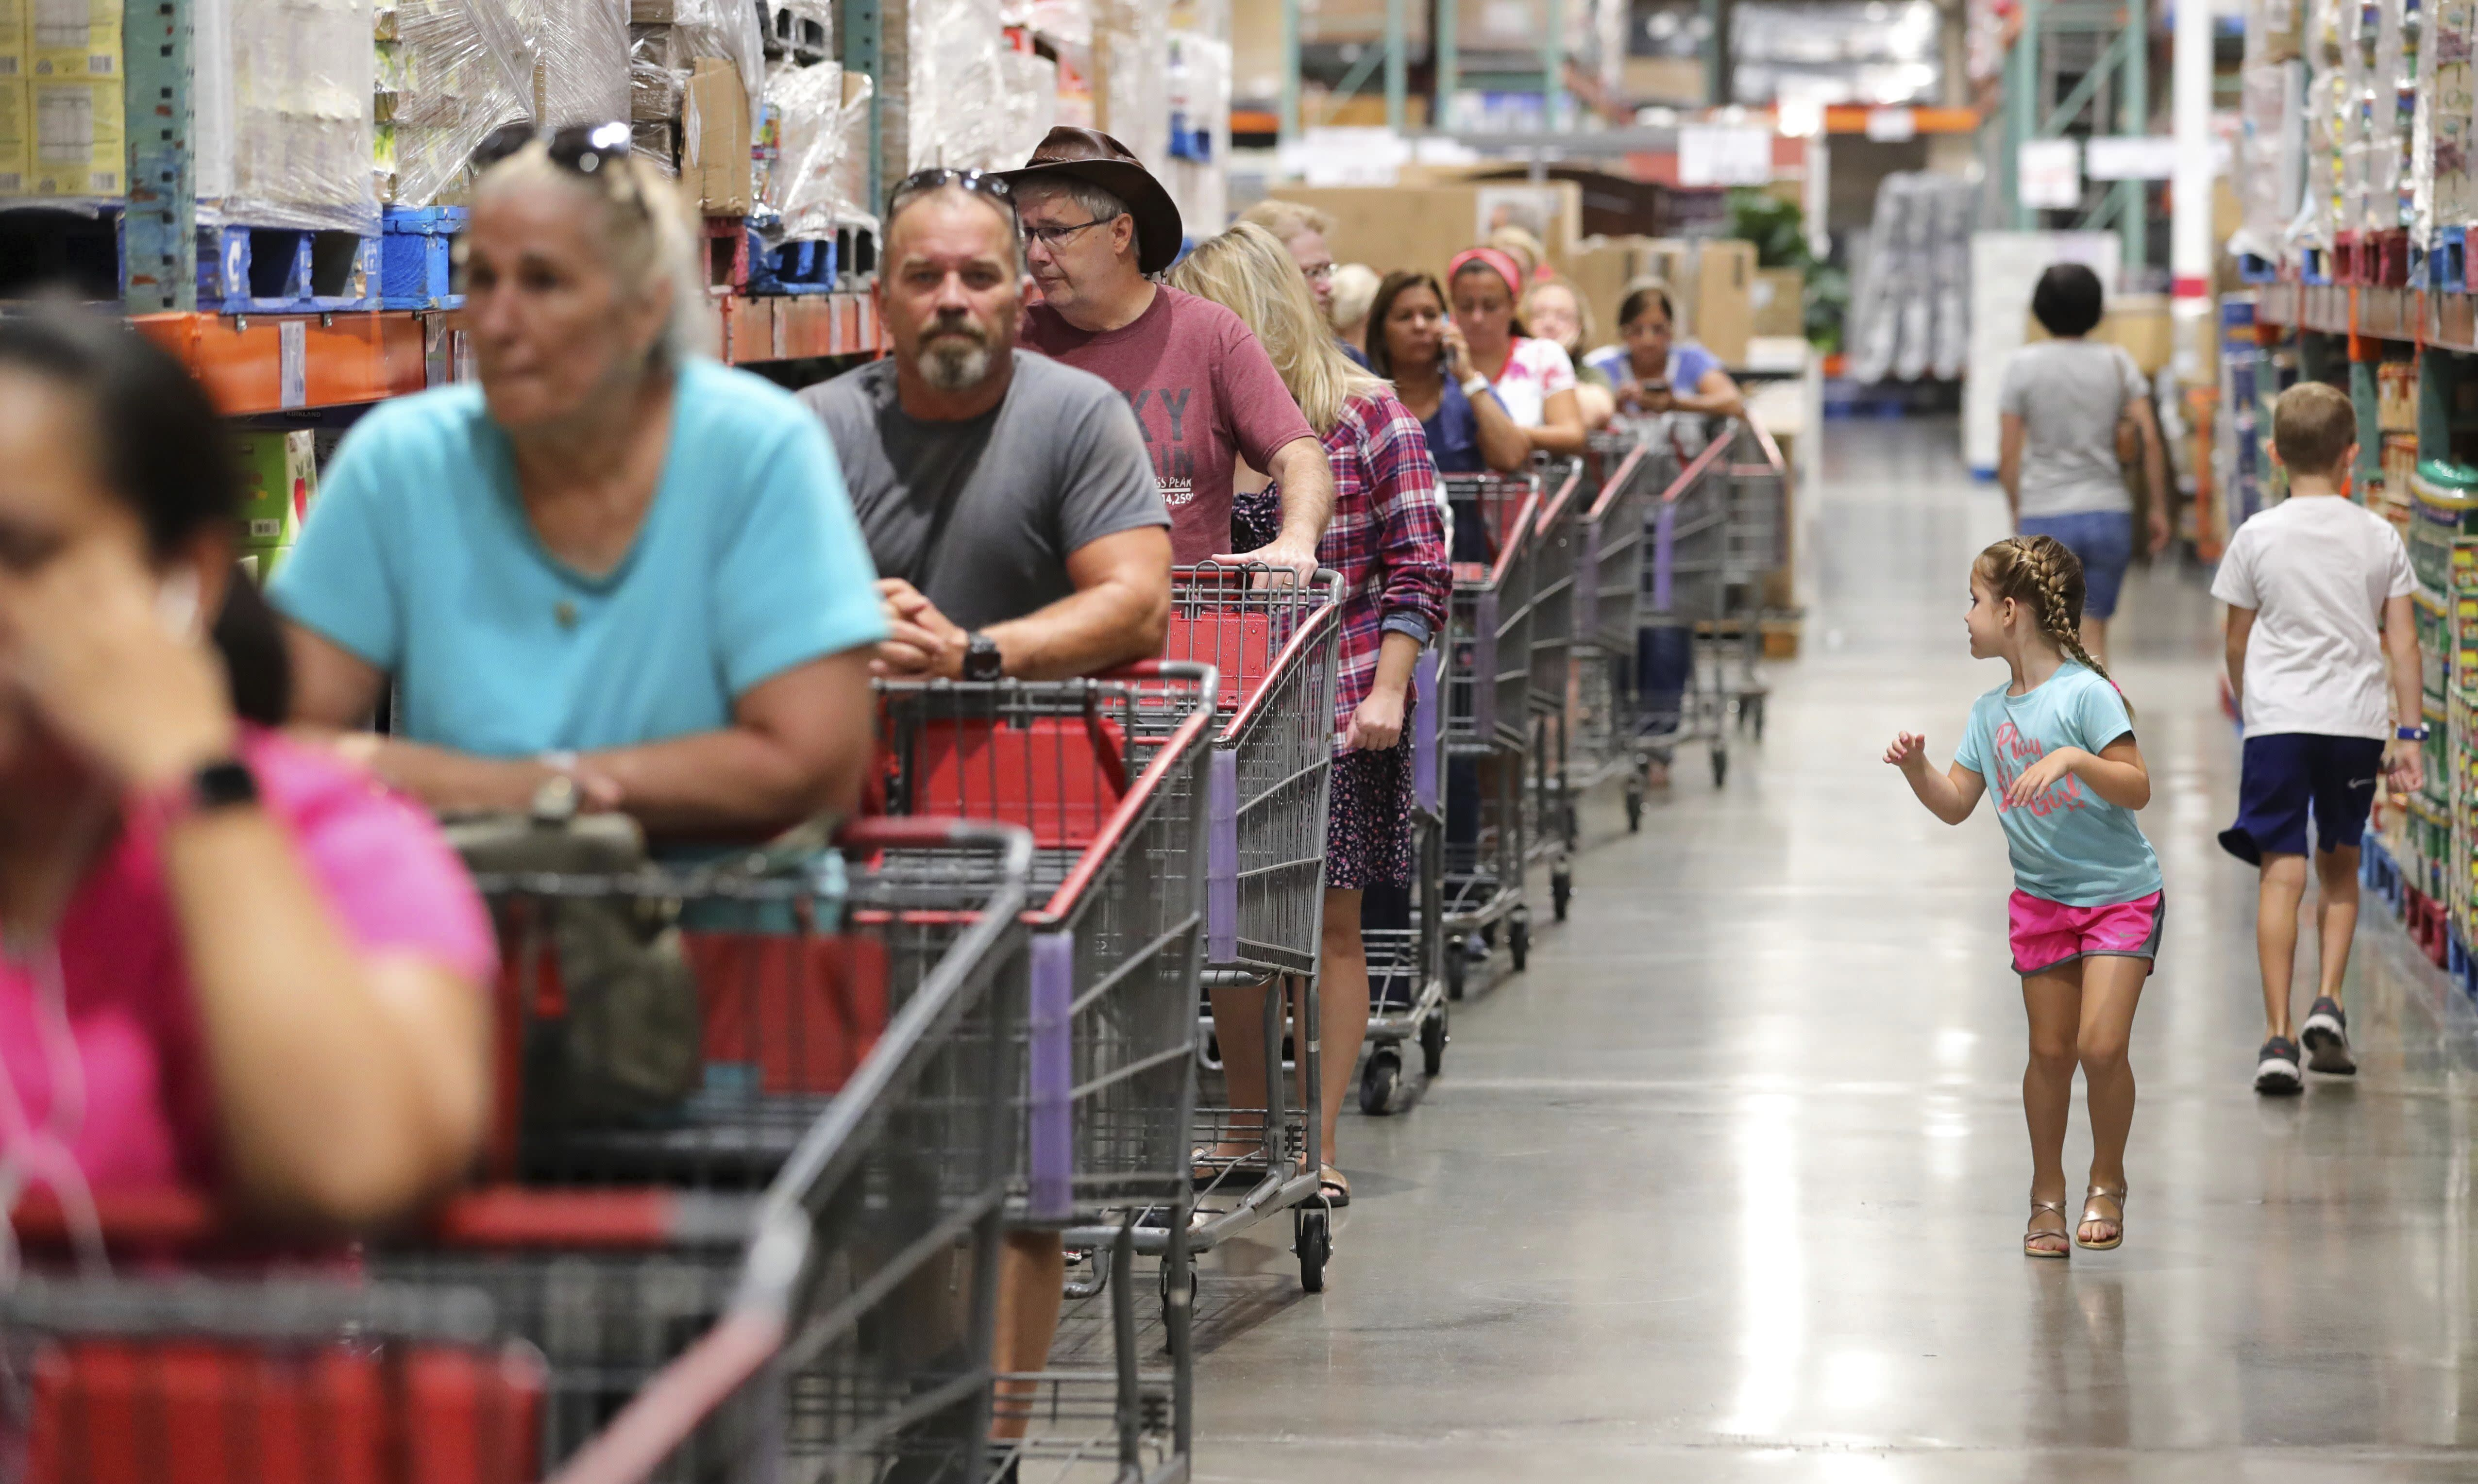 FILE - In this Aug. 30, 2019, file photo shoppers wait in line to get two cases of bottled water at the Costco store in Altamonte Springs, Fla. On Friday, Sept. 13, the Commerce Department releases U.S. retail sales data for August. (Joe Burbank/Orlando Sentinel via AP, File)